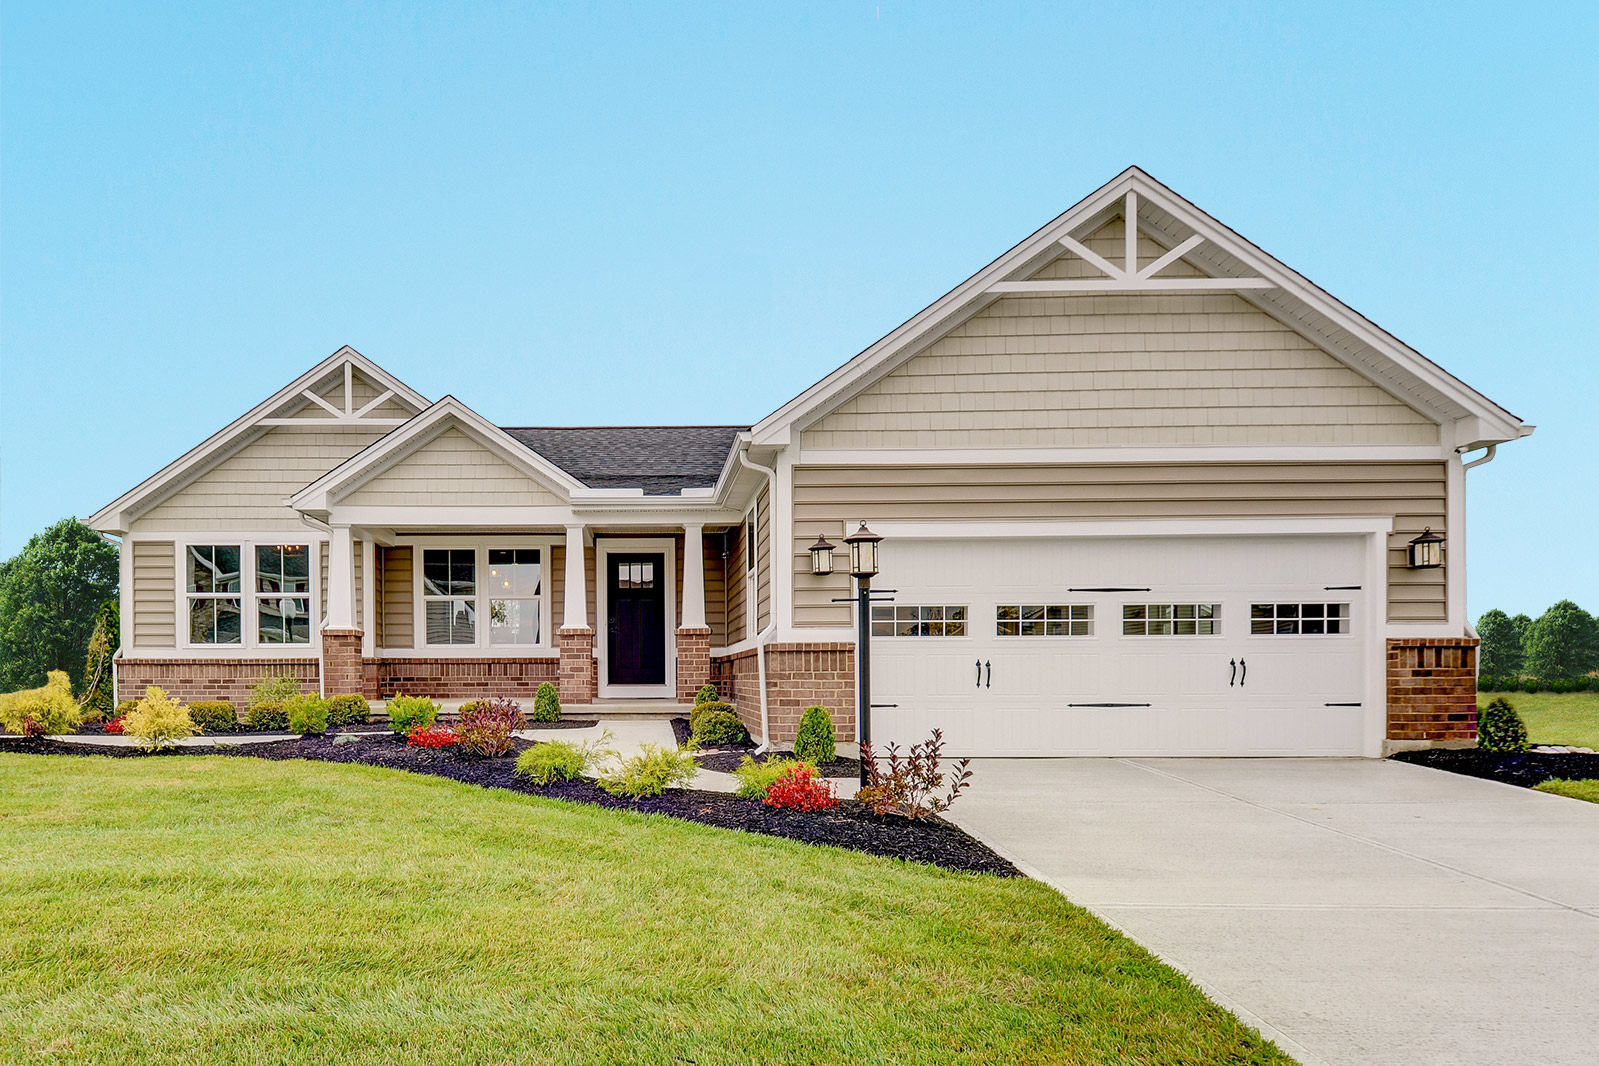 New homes for sale at cedar grove in tipp city oh within for Ravenwood homes